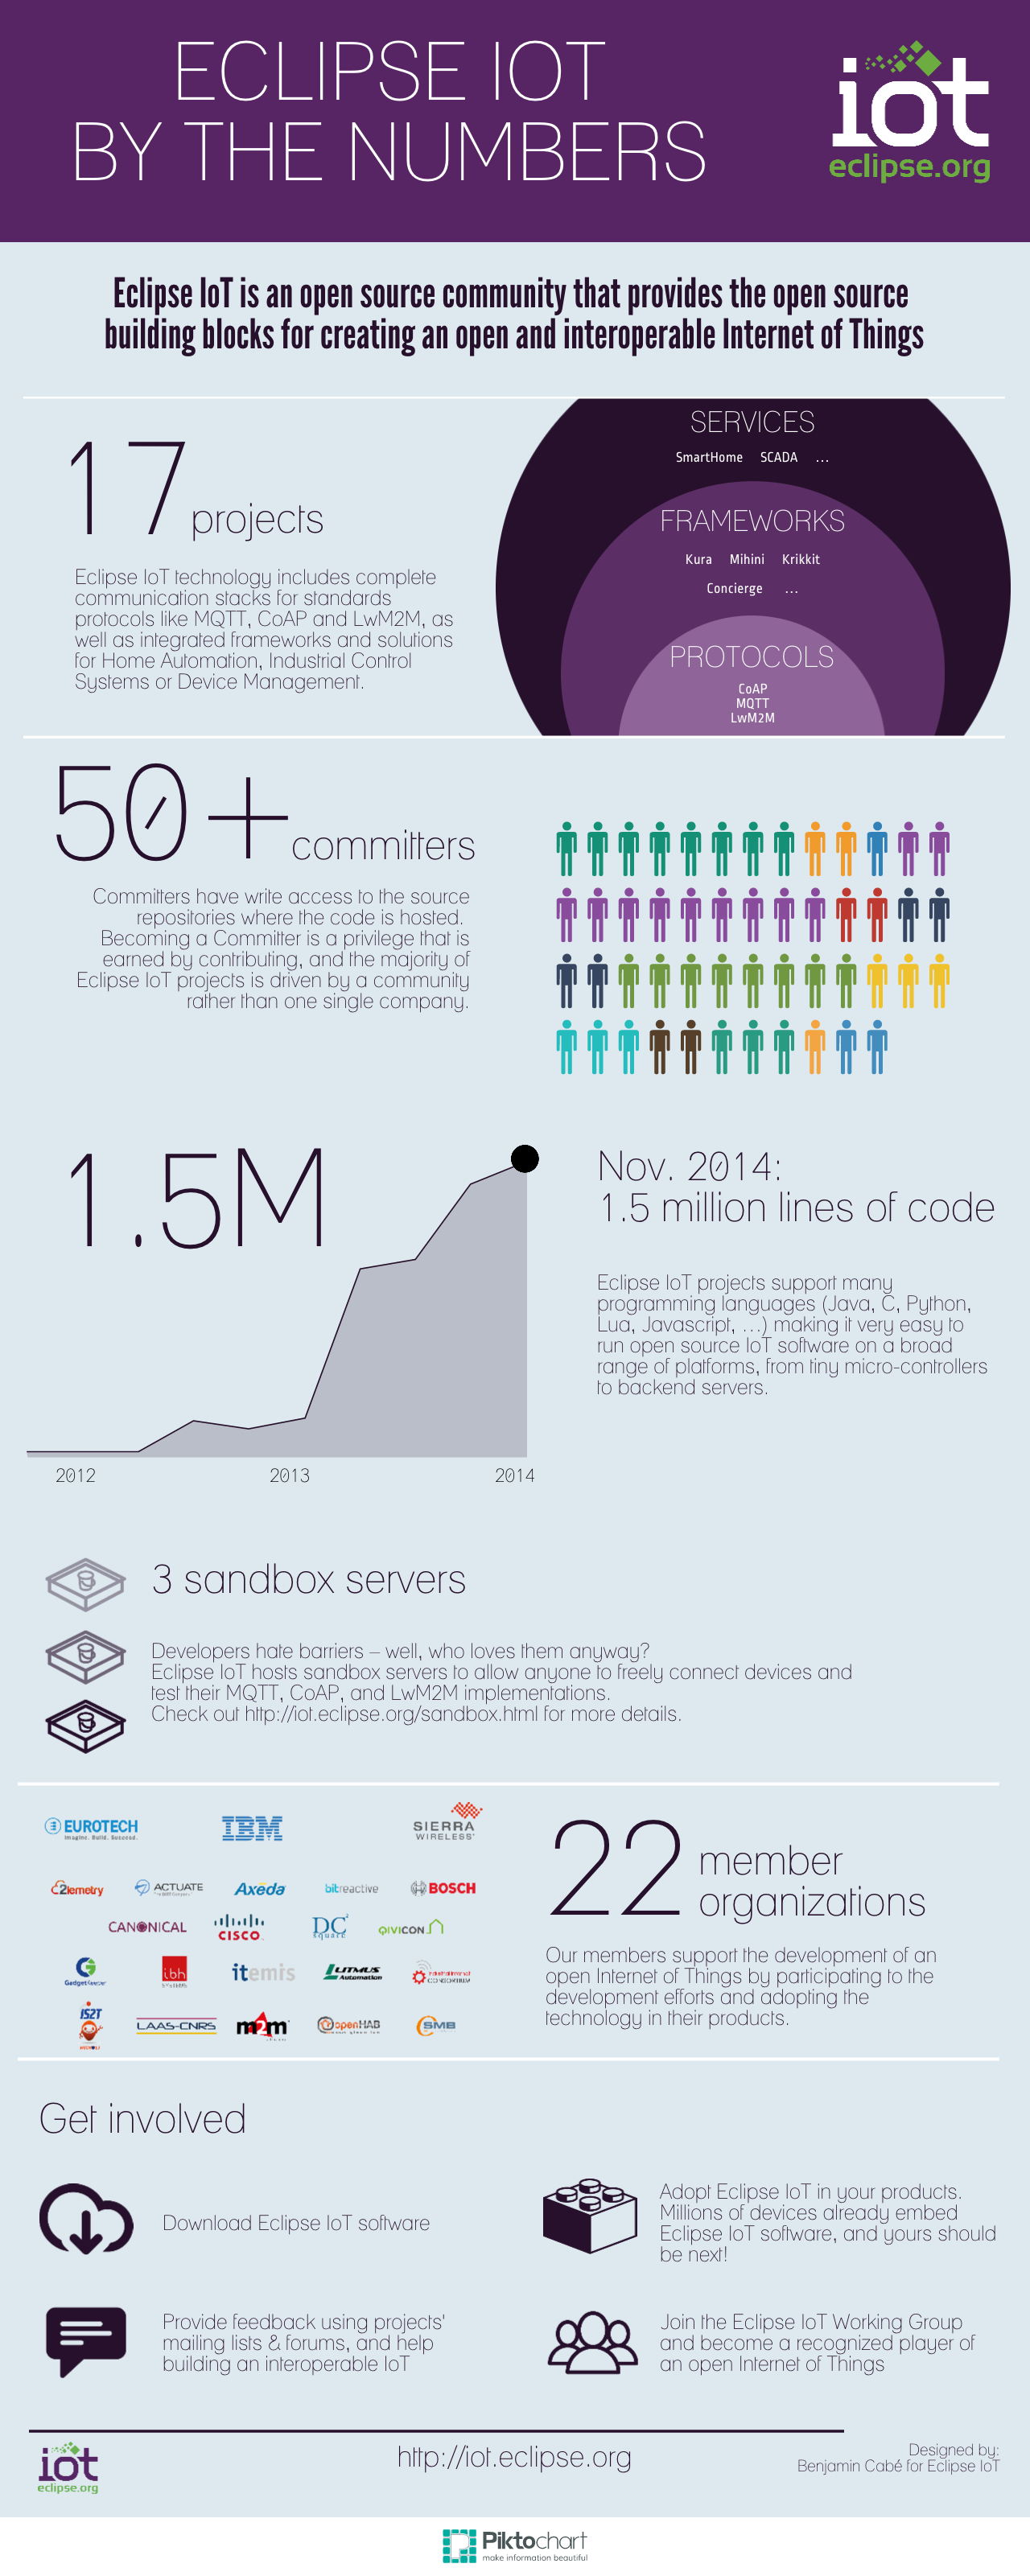 Eclipse IoT by the Numbers (Quelle: http://blog.benjamin-cabe.com/2014/11/12/eclipse-iot-by-the-numbers)